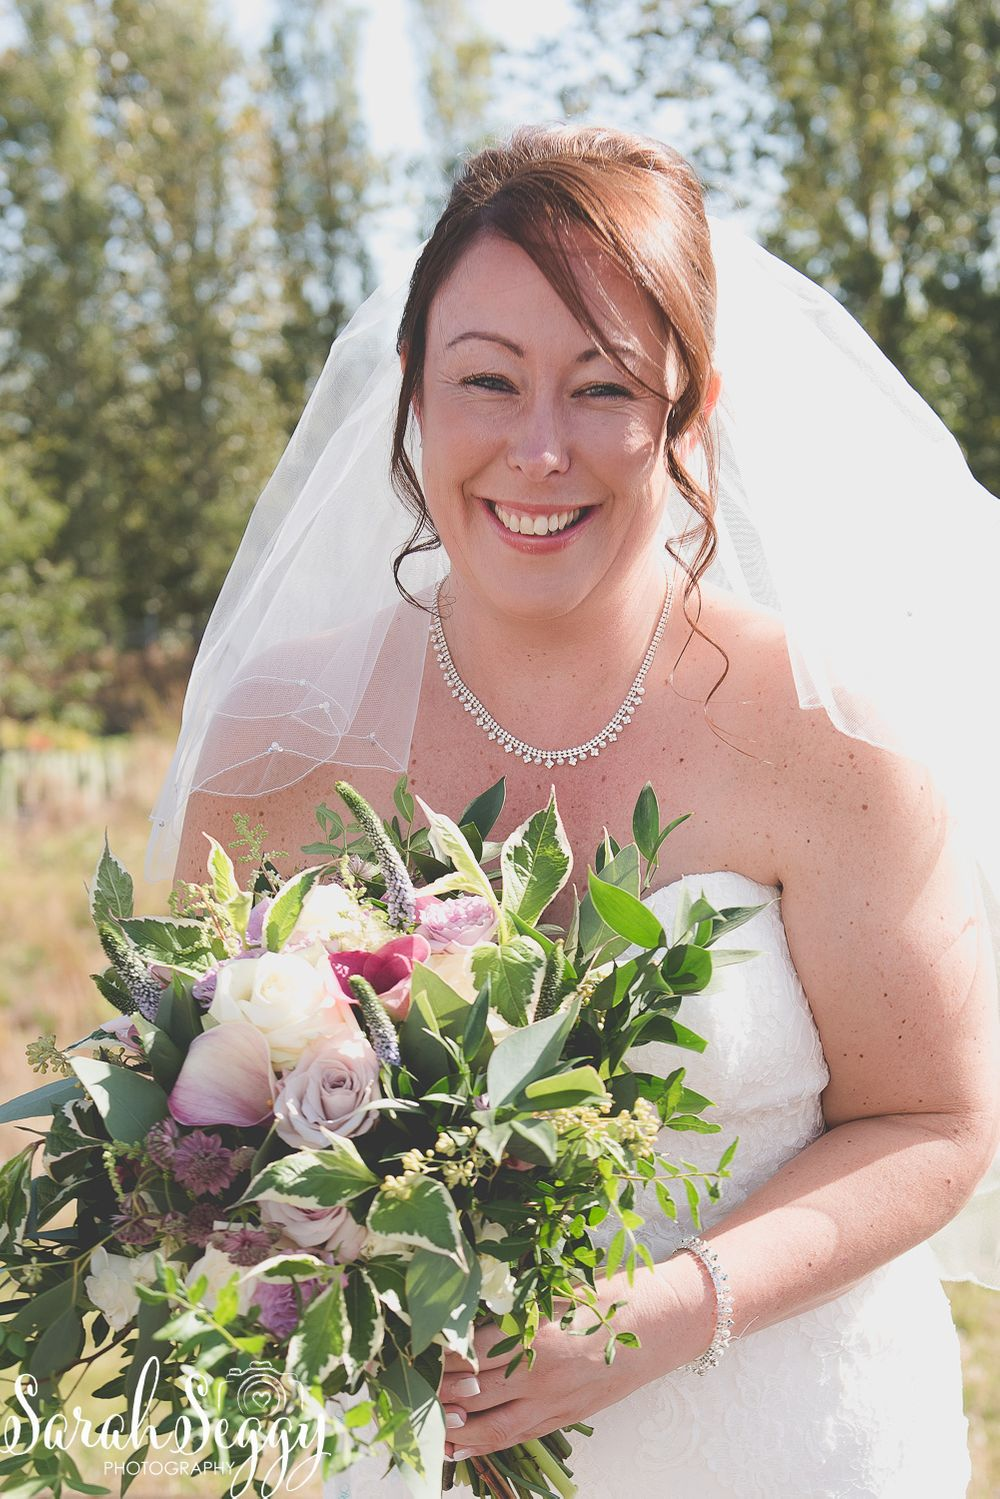 Wedding photographer Daventry